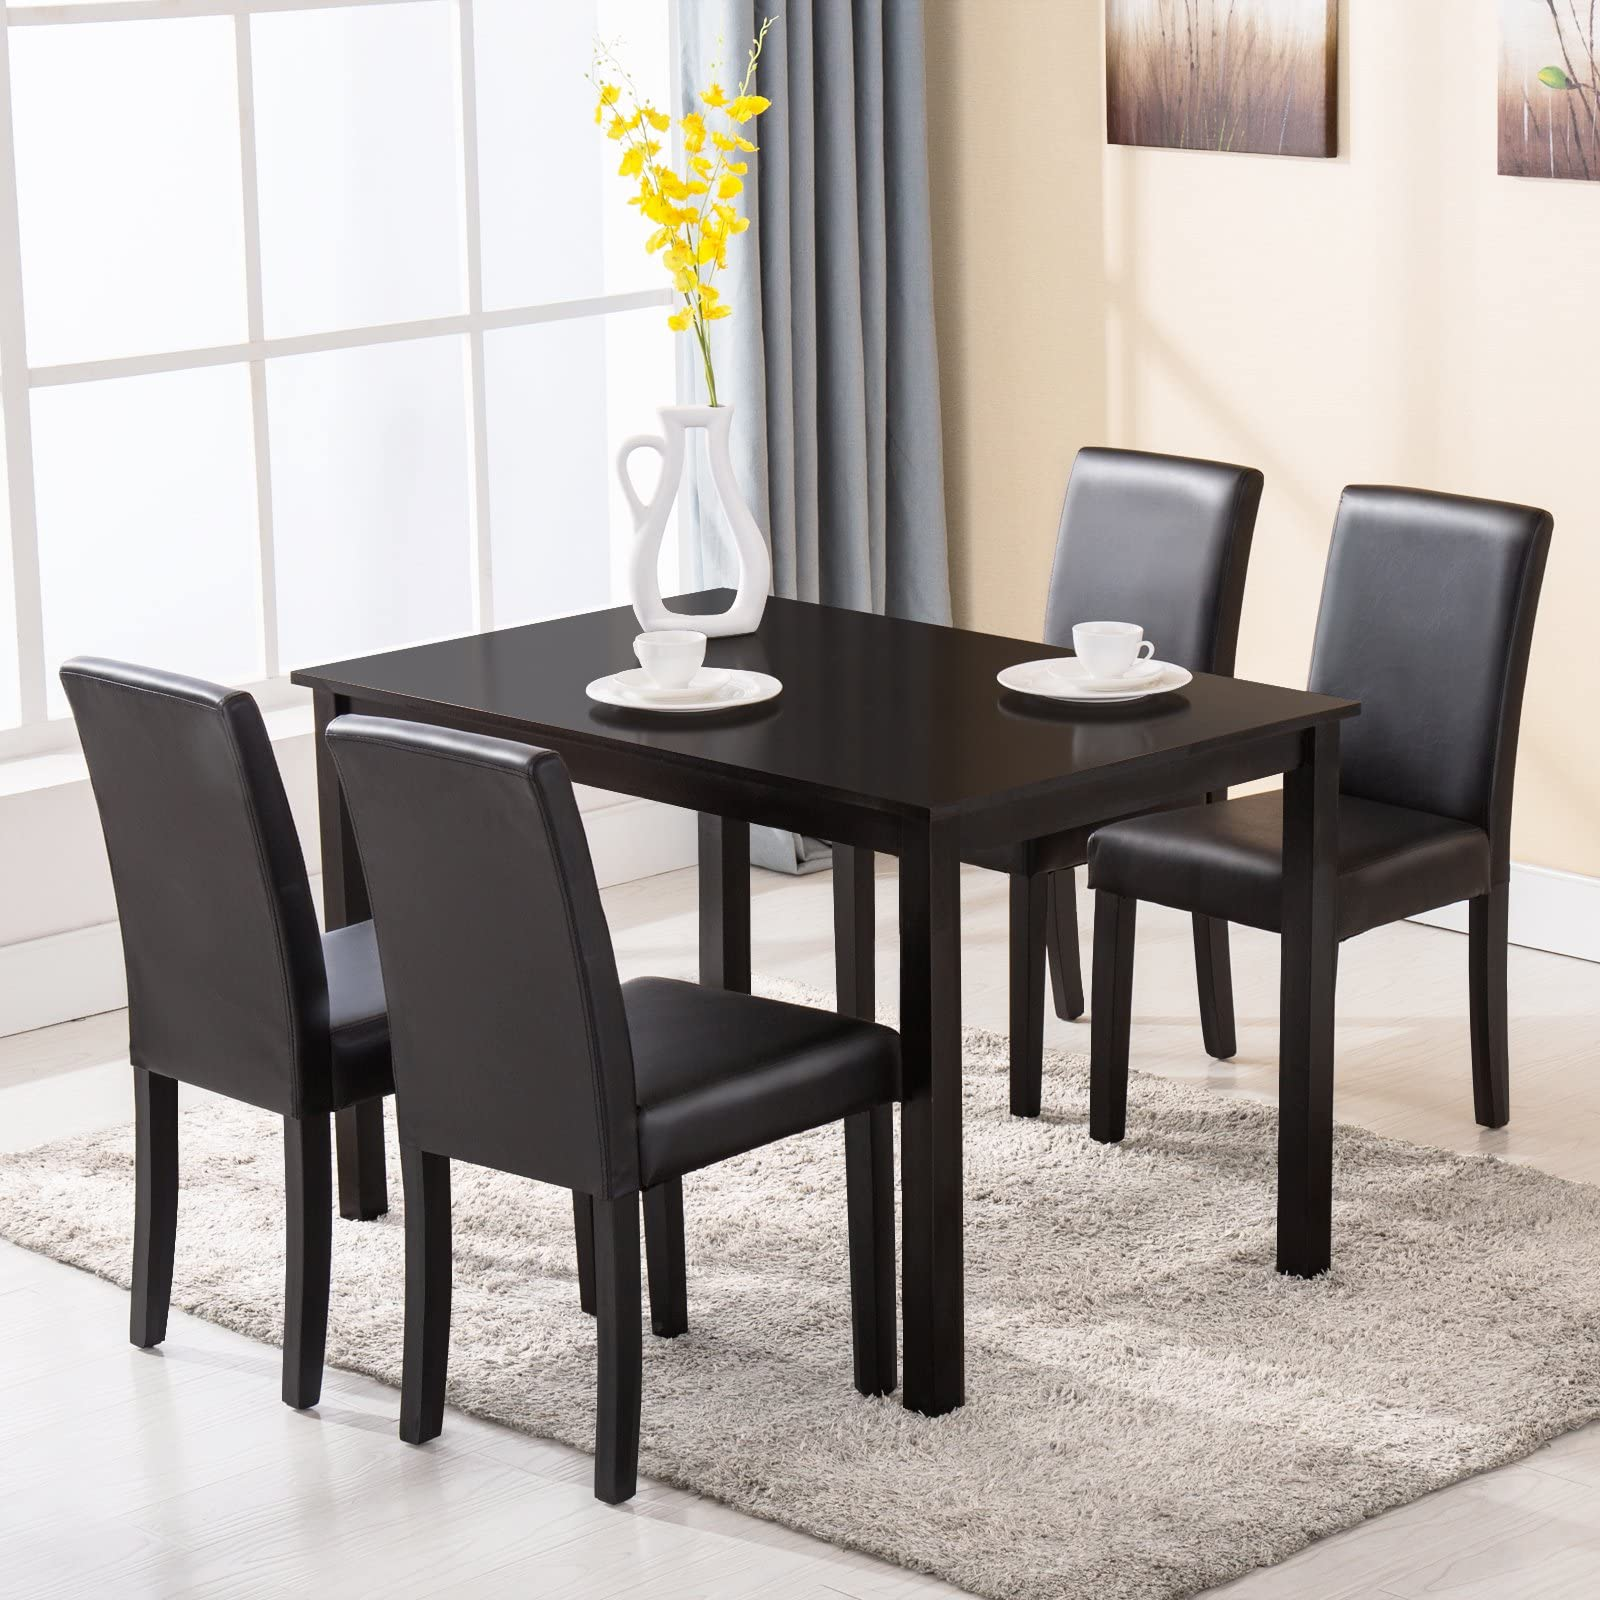 Mecor 5 Piece Dining Table Set Wood Table/4 Leather Chairs Kitchen Room Breakfast Furniture  sc 1 st  Amazon.com & Table \u0026 Chair Sets | Amazon.com